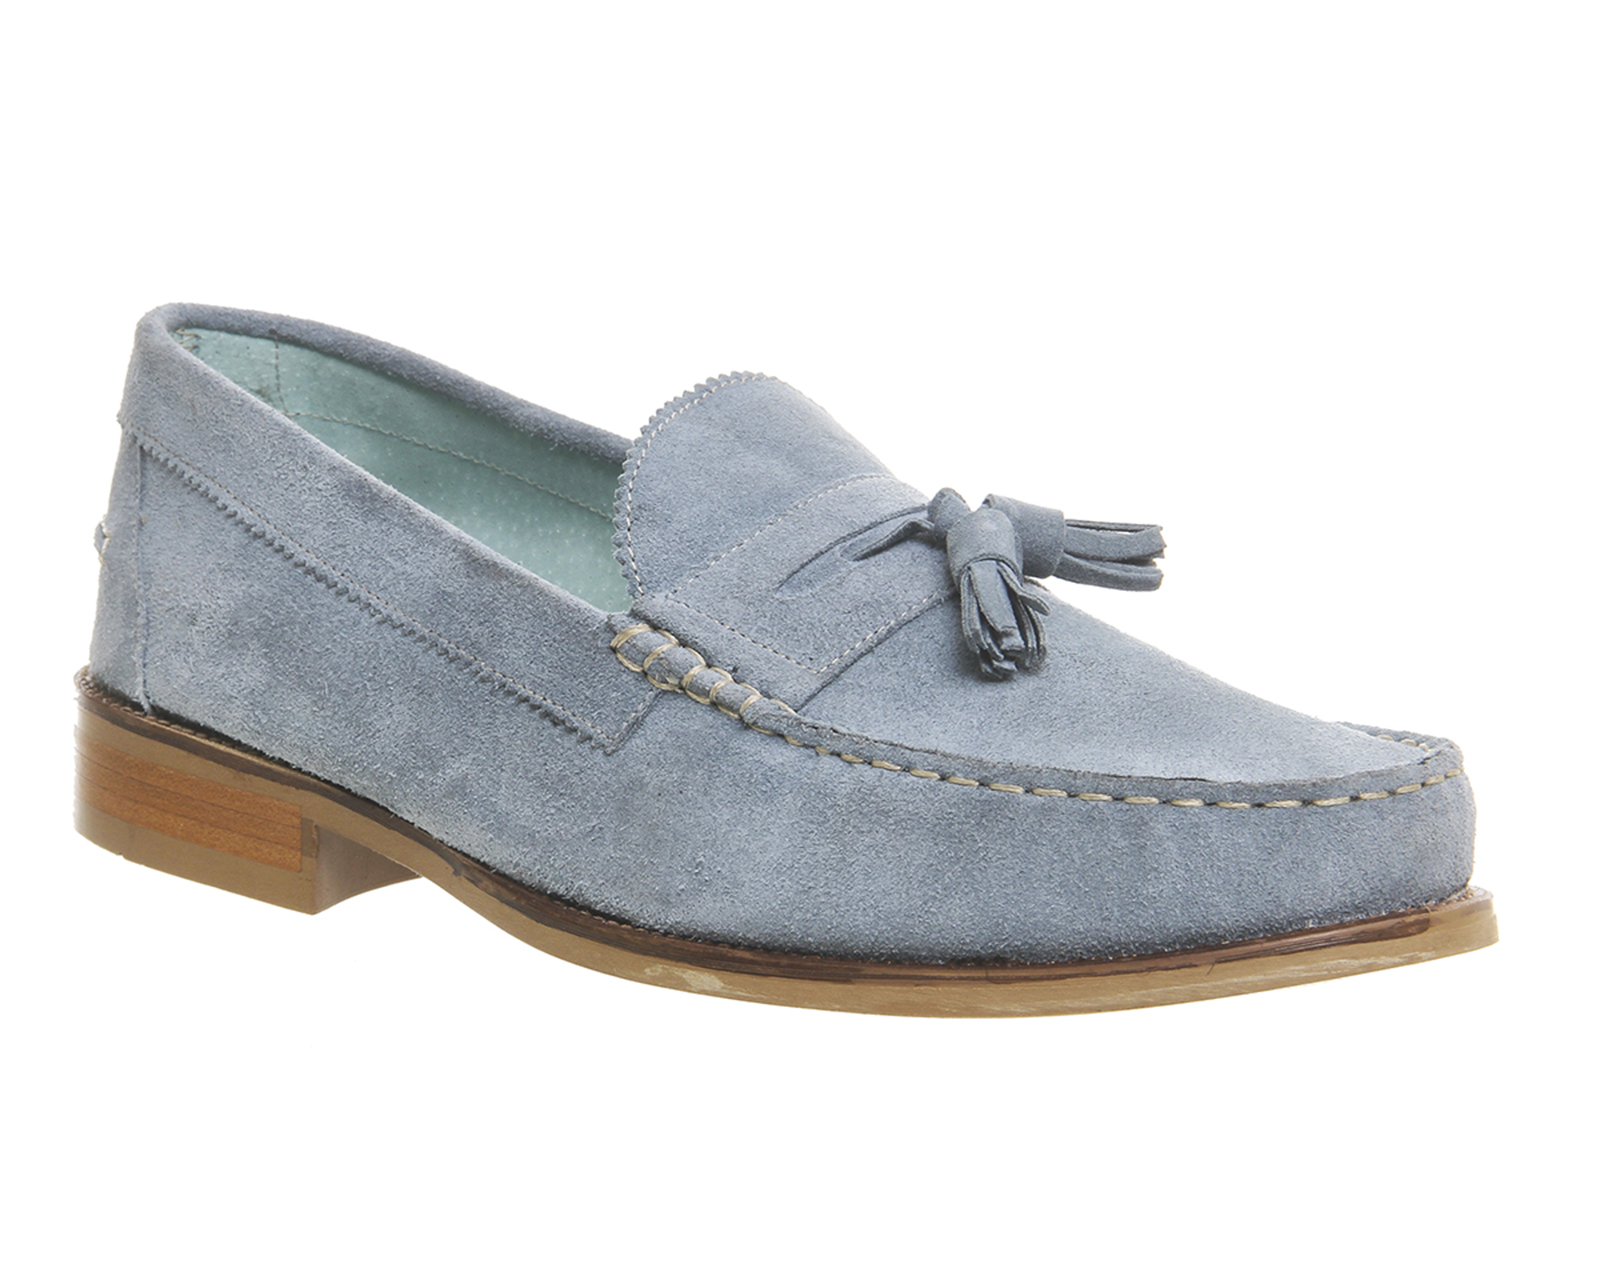 Mens Ask the Missus Bonjourno Tassel Loafers BABY BLUE SUEDE Casual Shoes